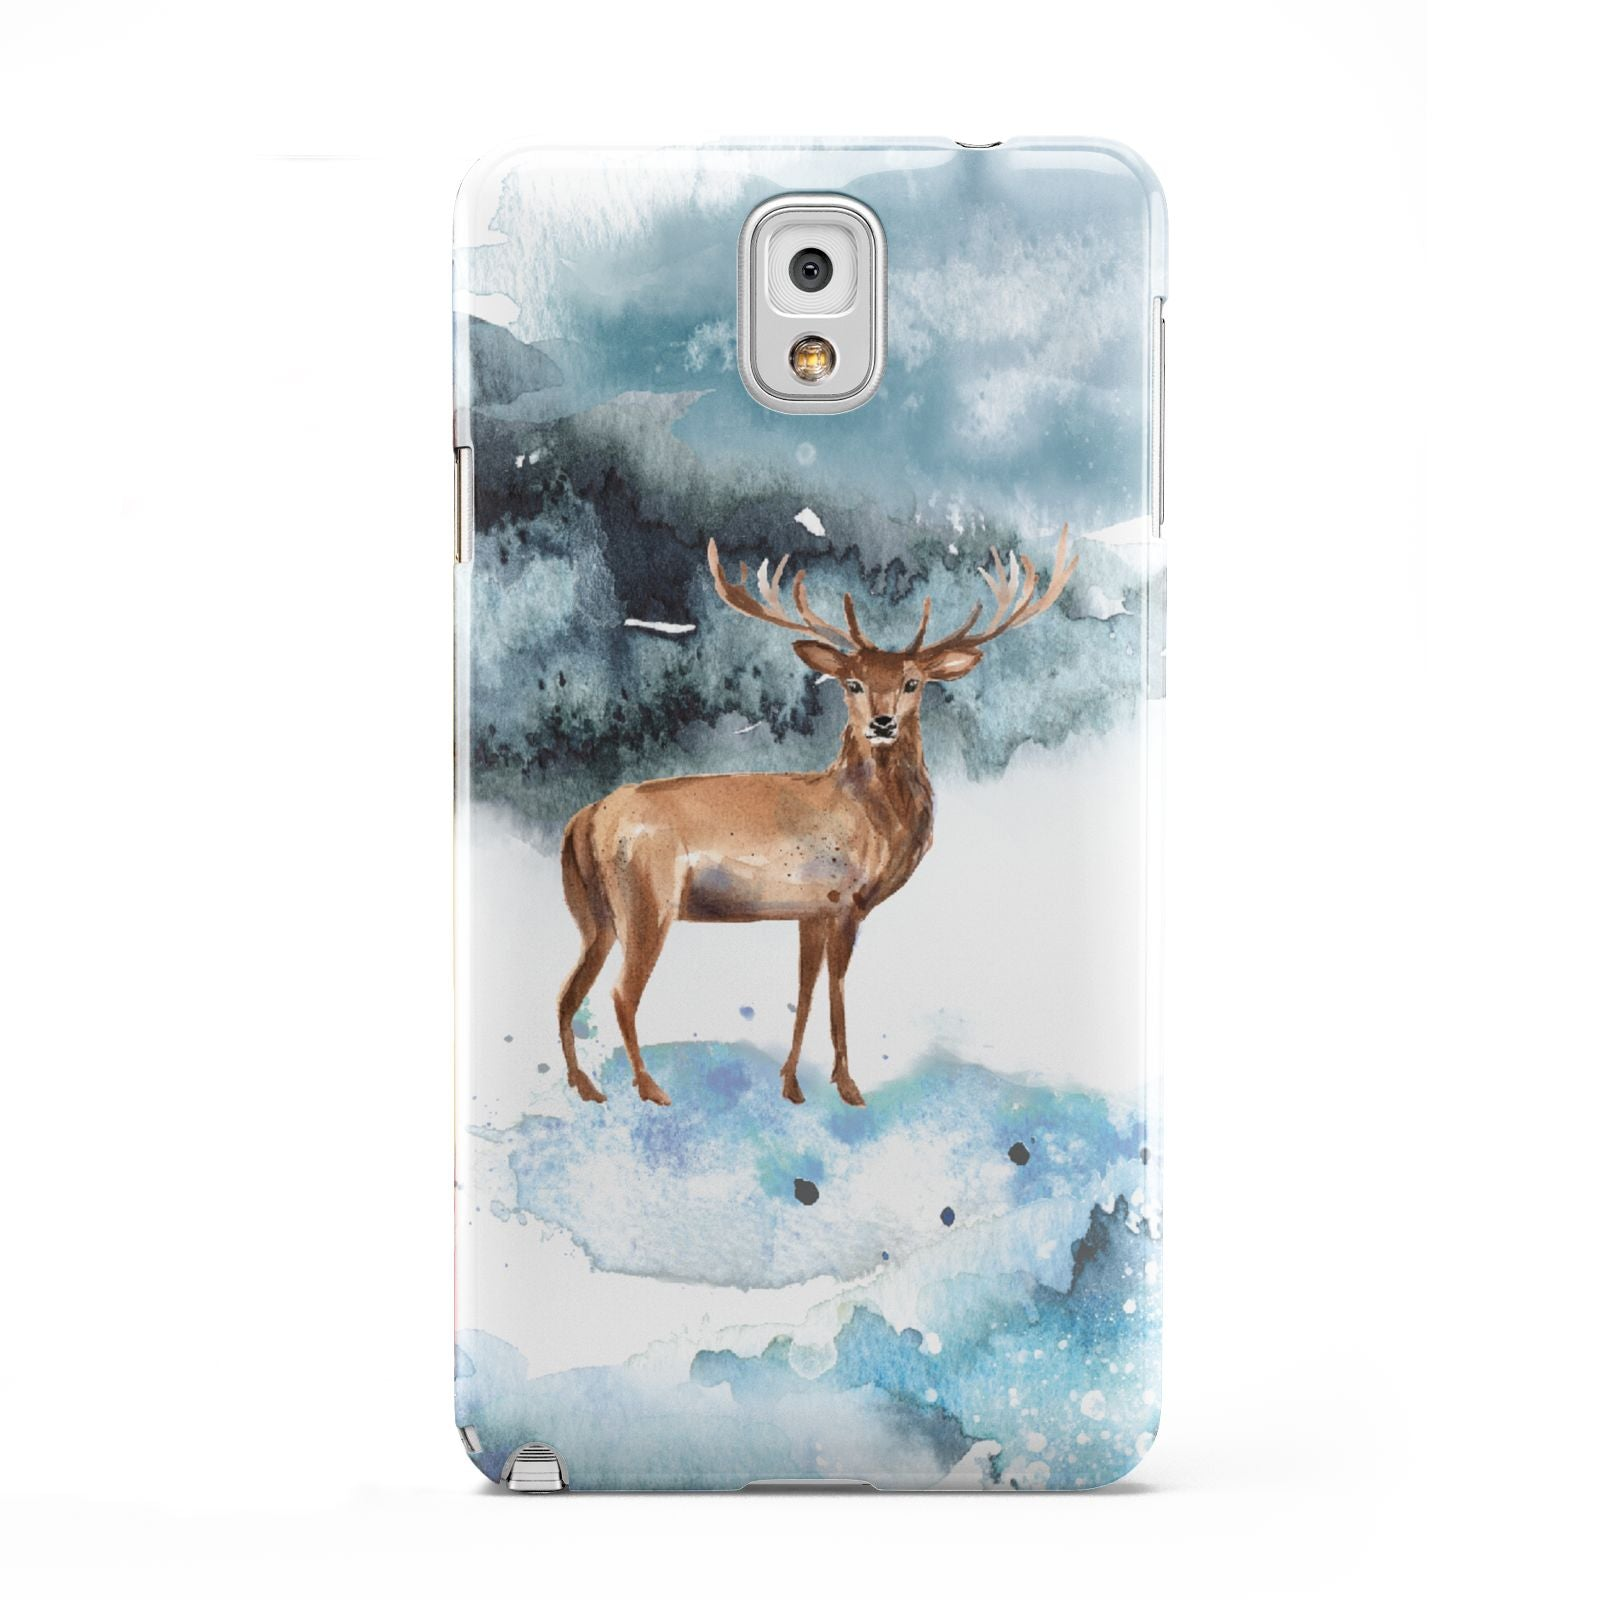 Christmas Winter Stag Samsung Galaxy Note 3 Case